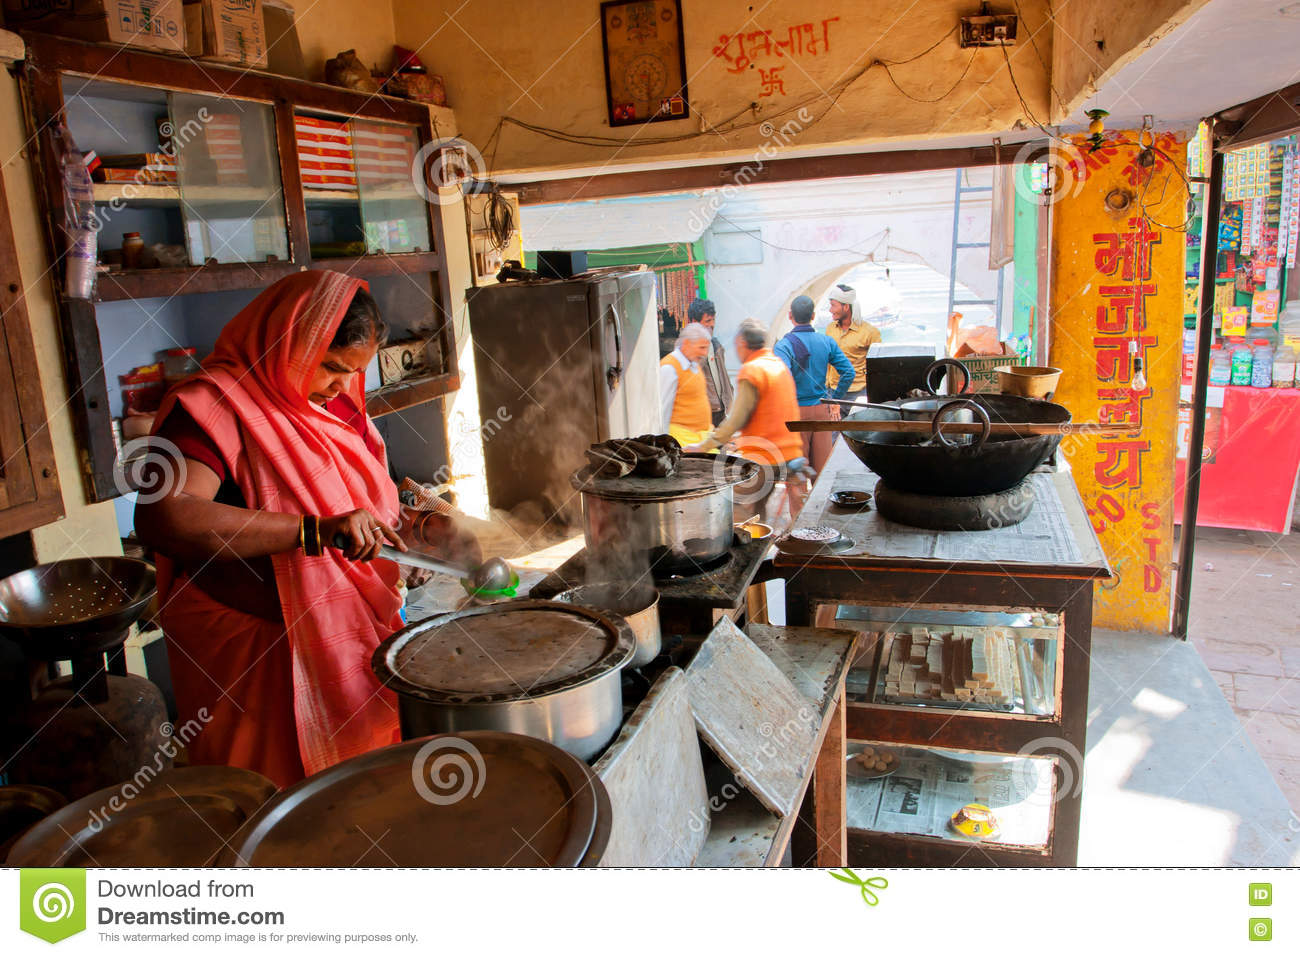 Food street market in pakistan editorial image for City indian dining ltd t a spice trader